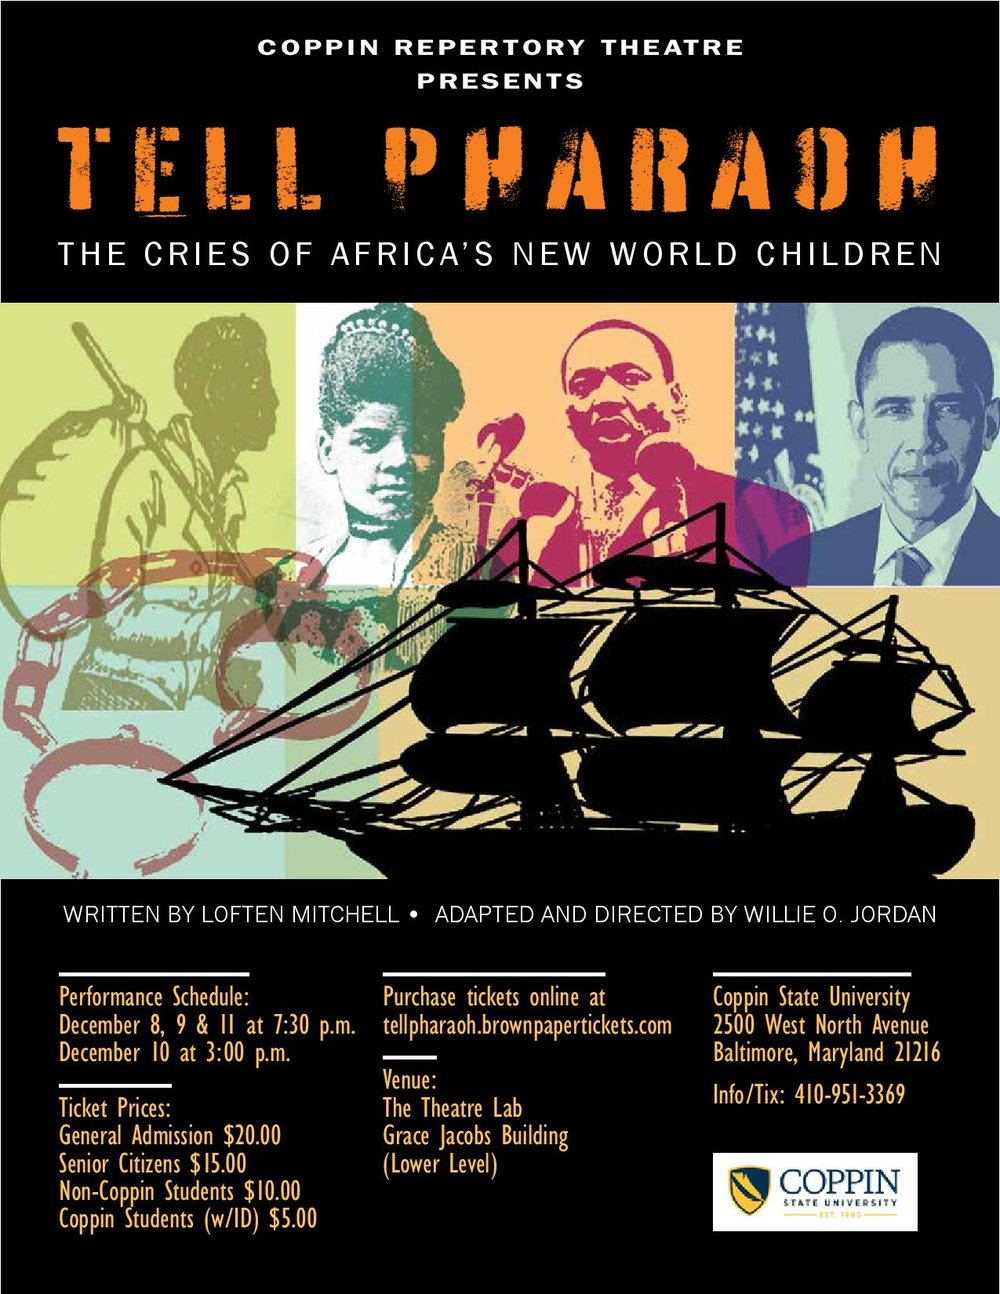 Flyer--TELL PHARAOH (final) 11-15-2017-page-001.jpg